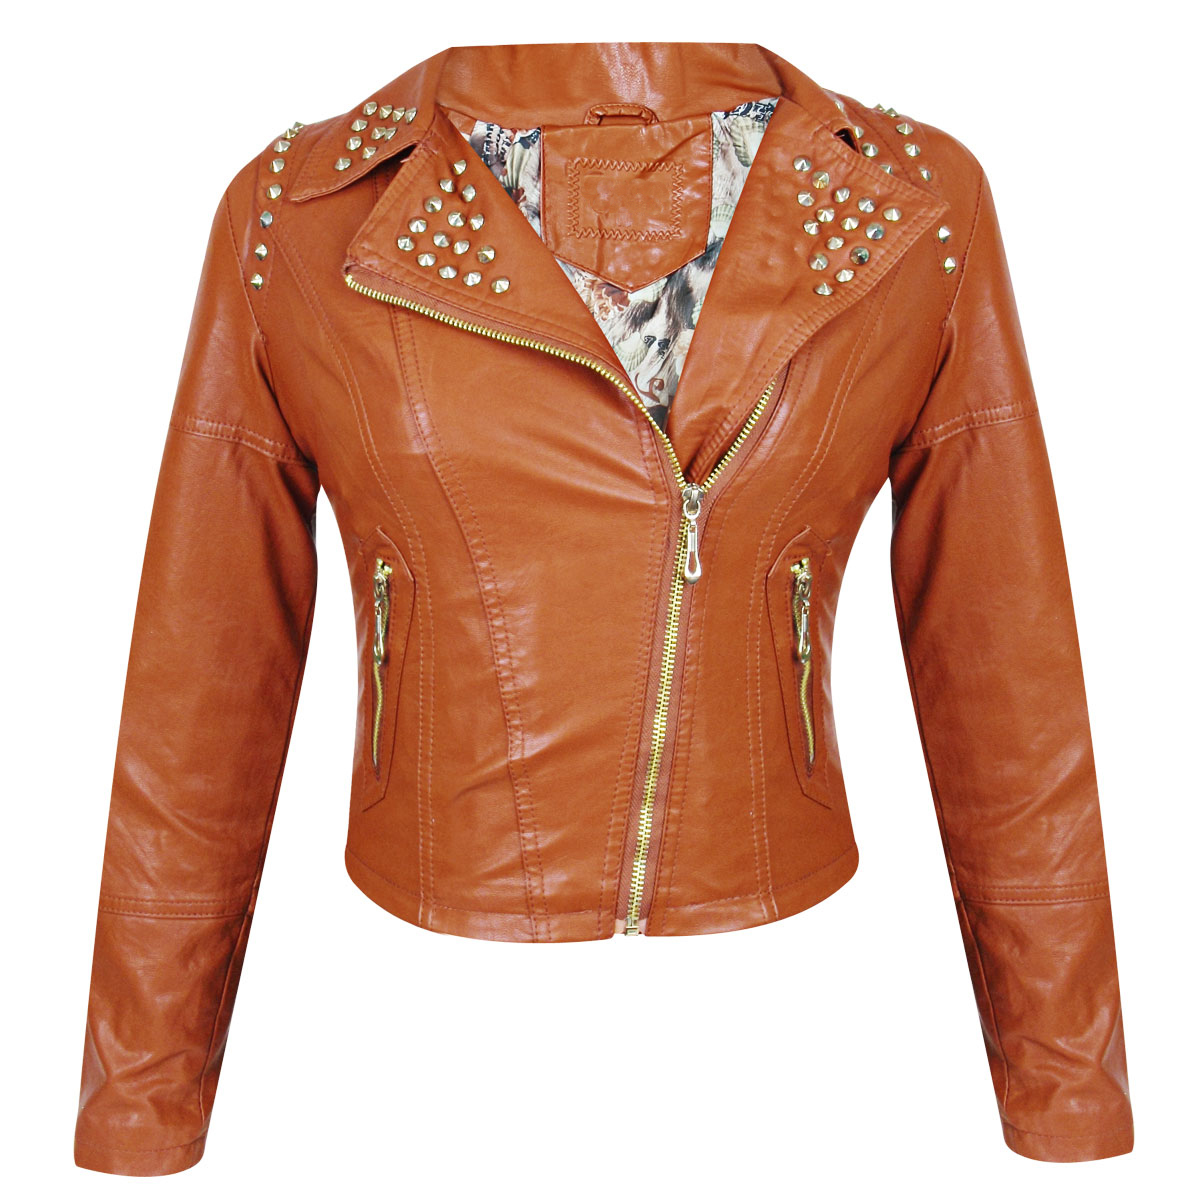 Tan Color Slim Fit Biker Genuine Leather Jacket with Silver Studs for Women's